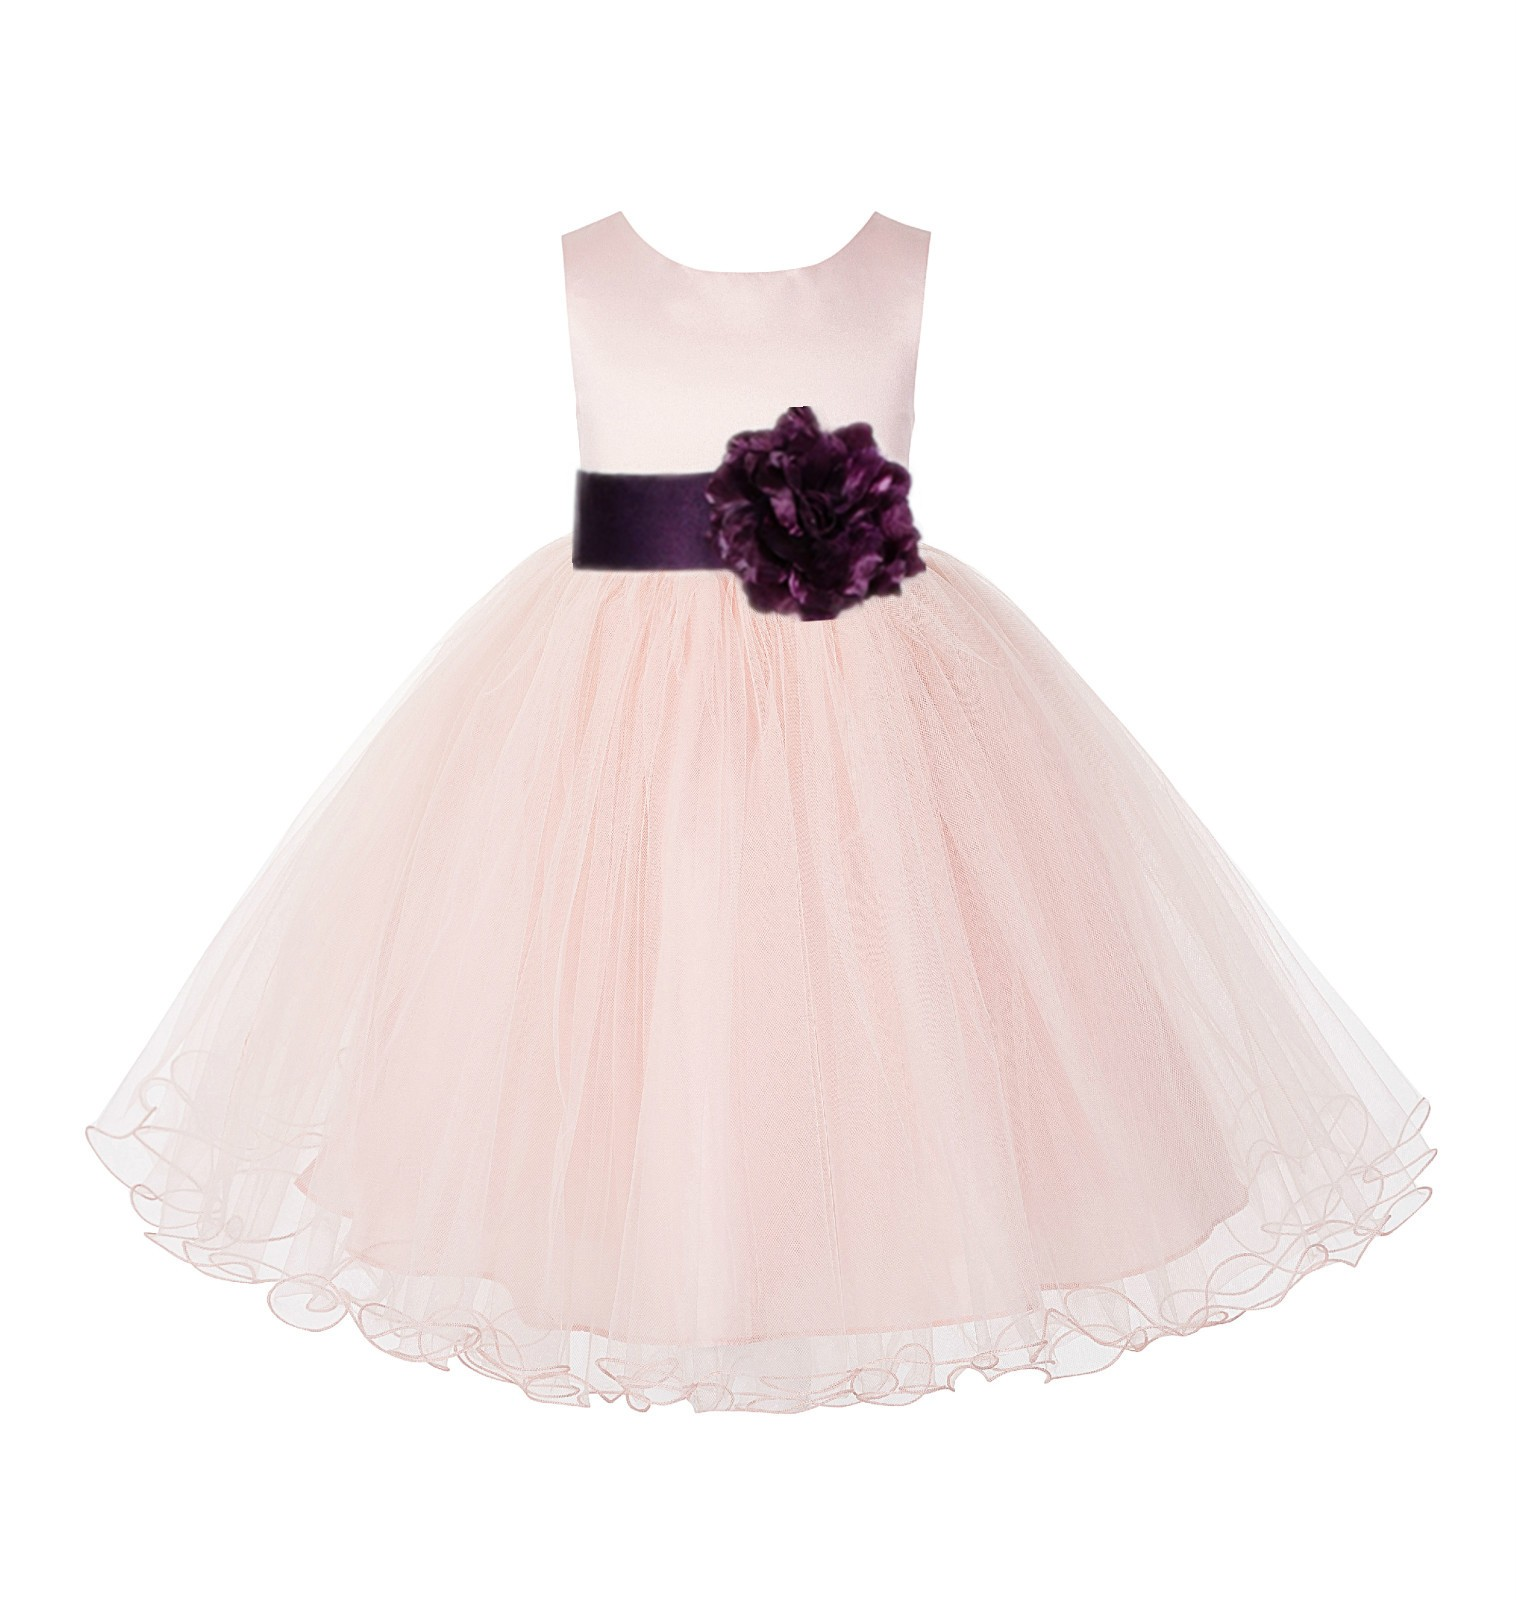 Blush Pink / Plum Tulle Rattail Edge Flower Girl Dress Pageant Recital 829S